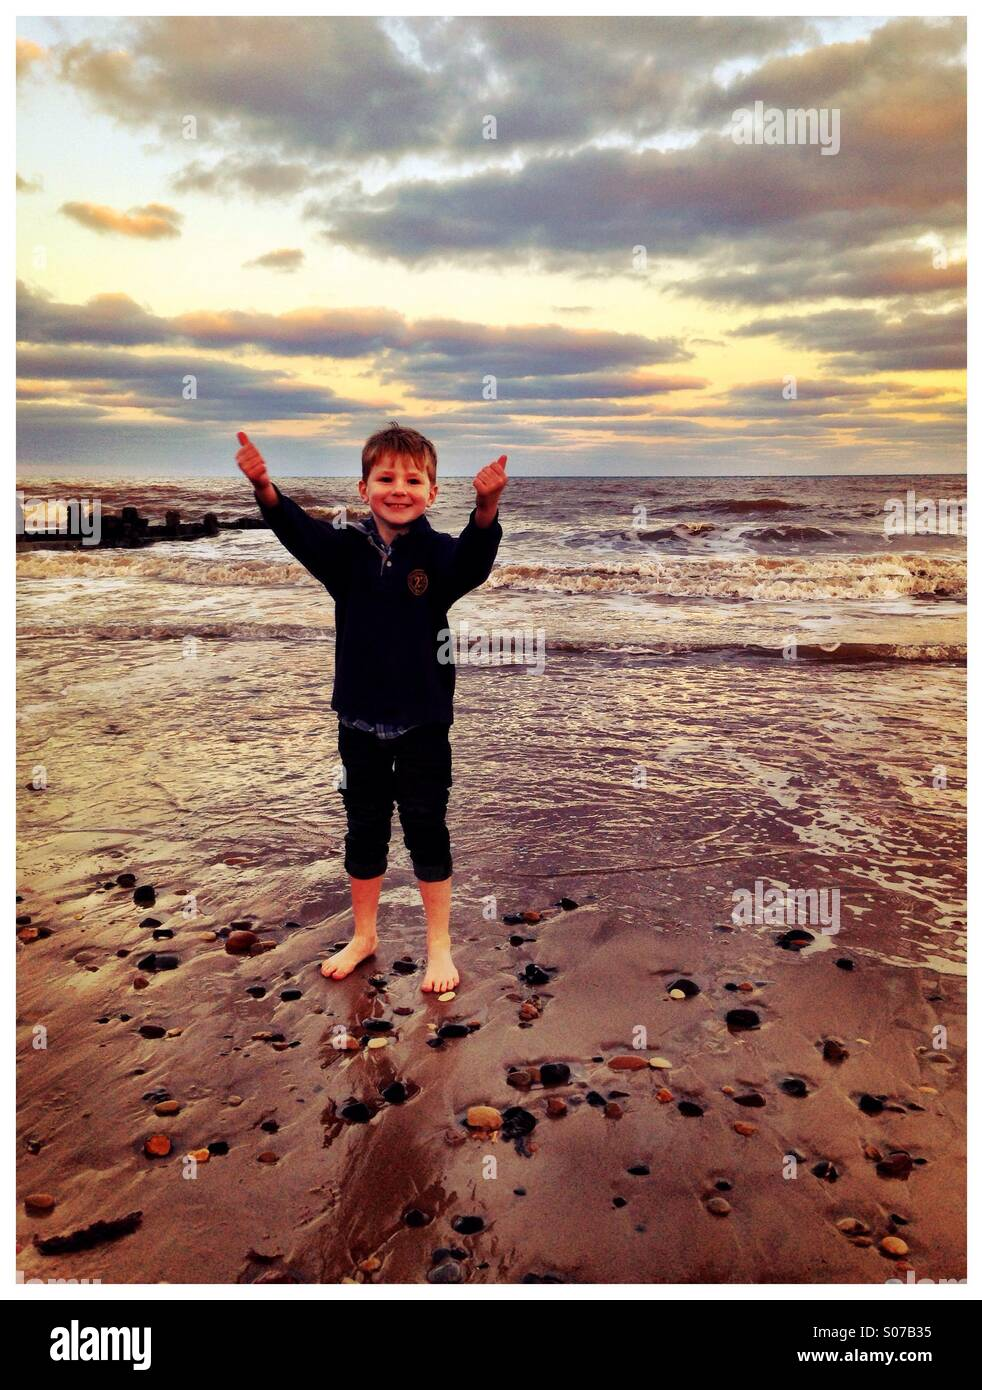 Big sky, big beach, small boy. Hornsea. - Stock Image